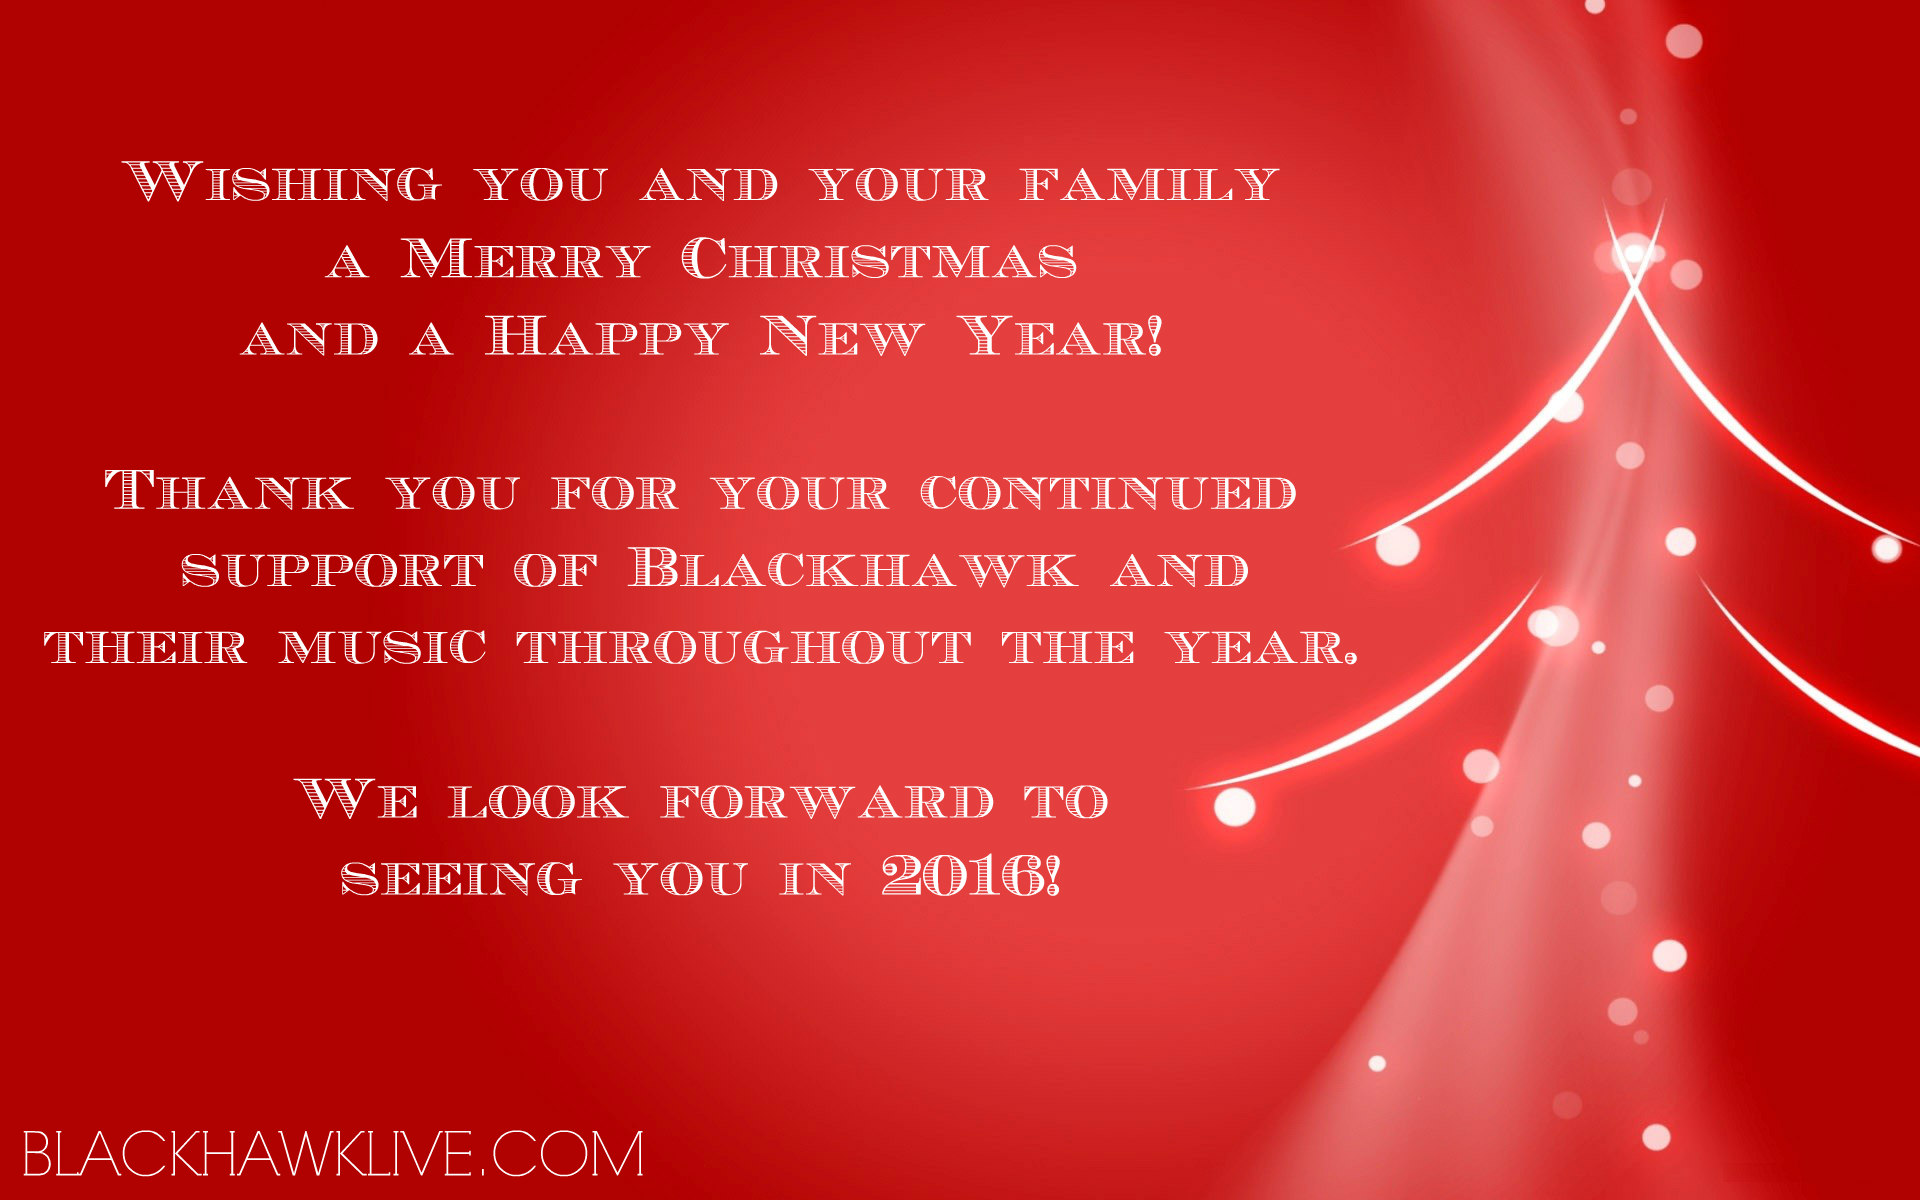 Happy Holidays from Blackhawk!